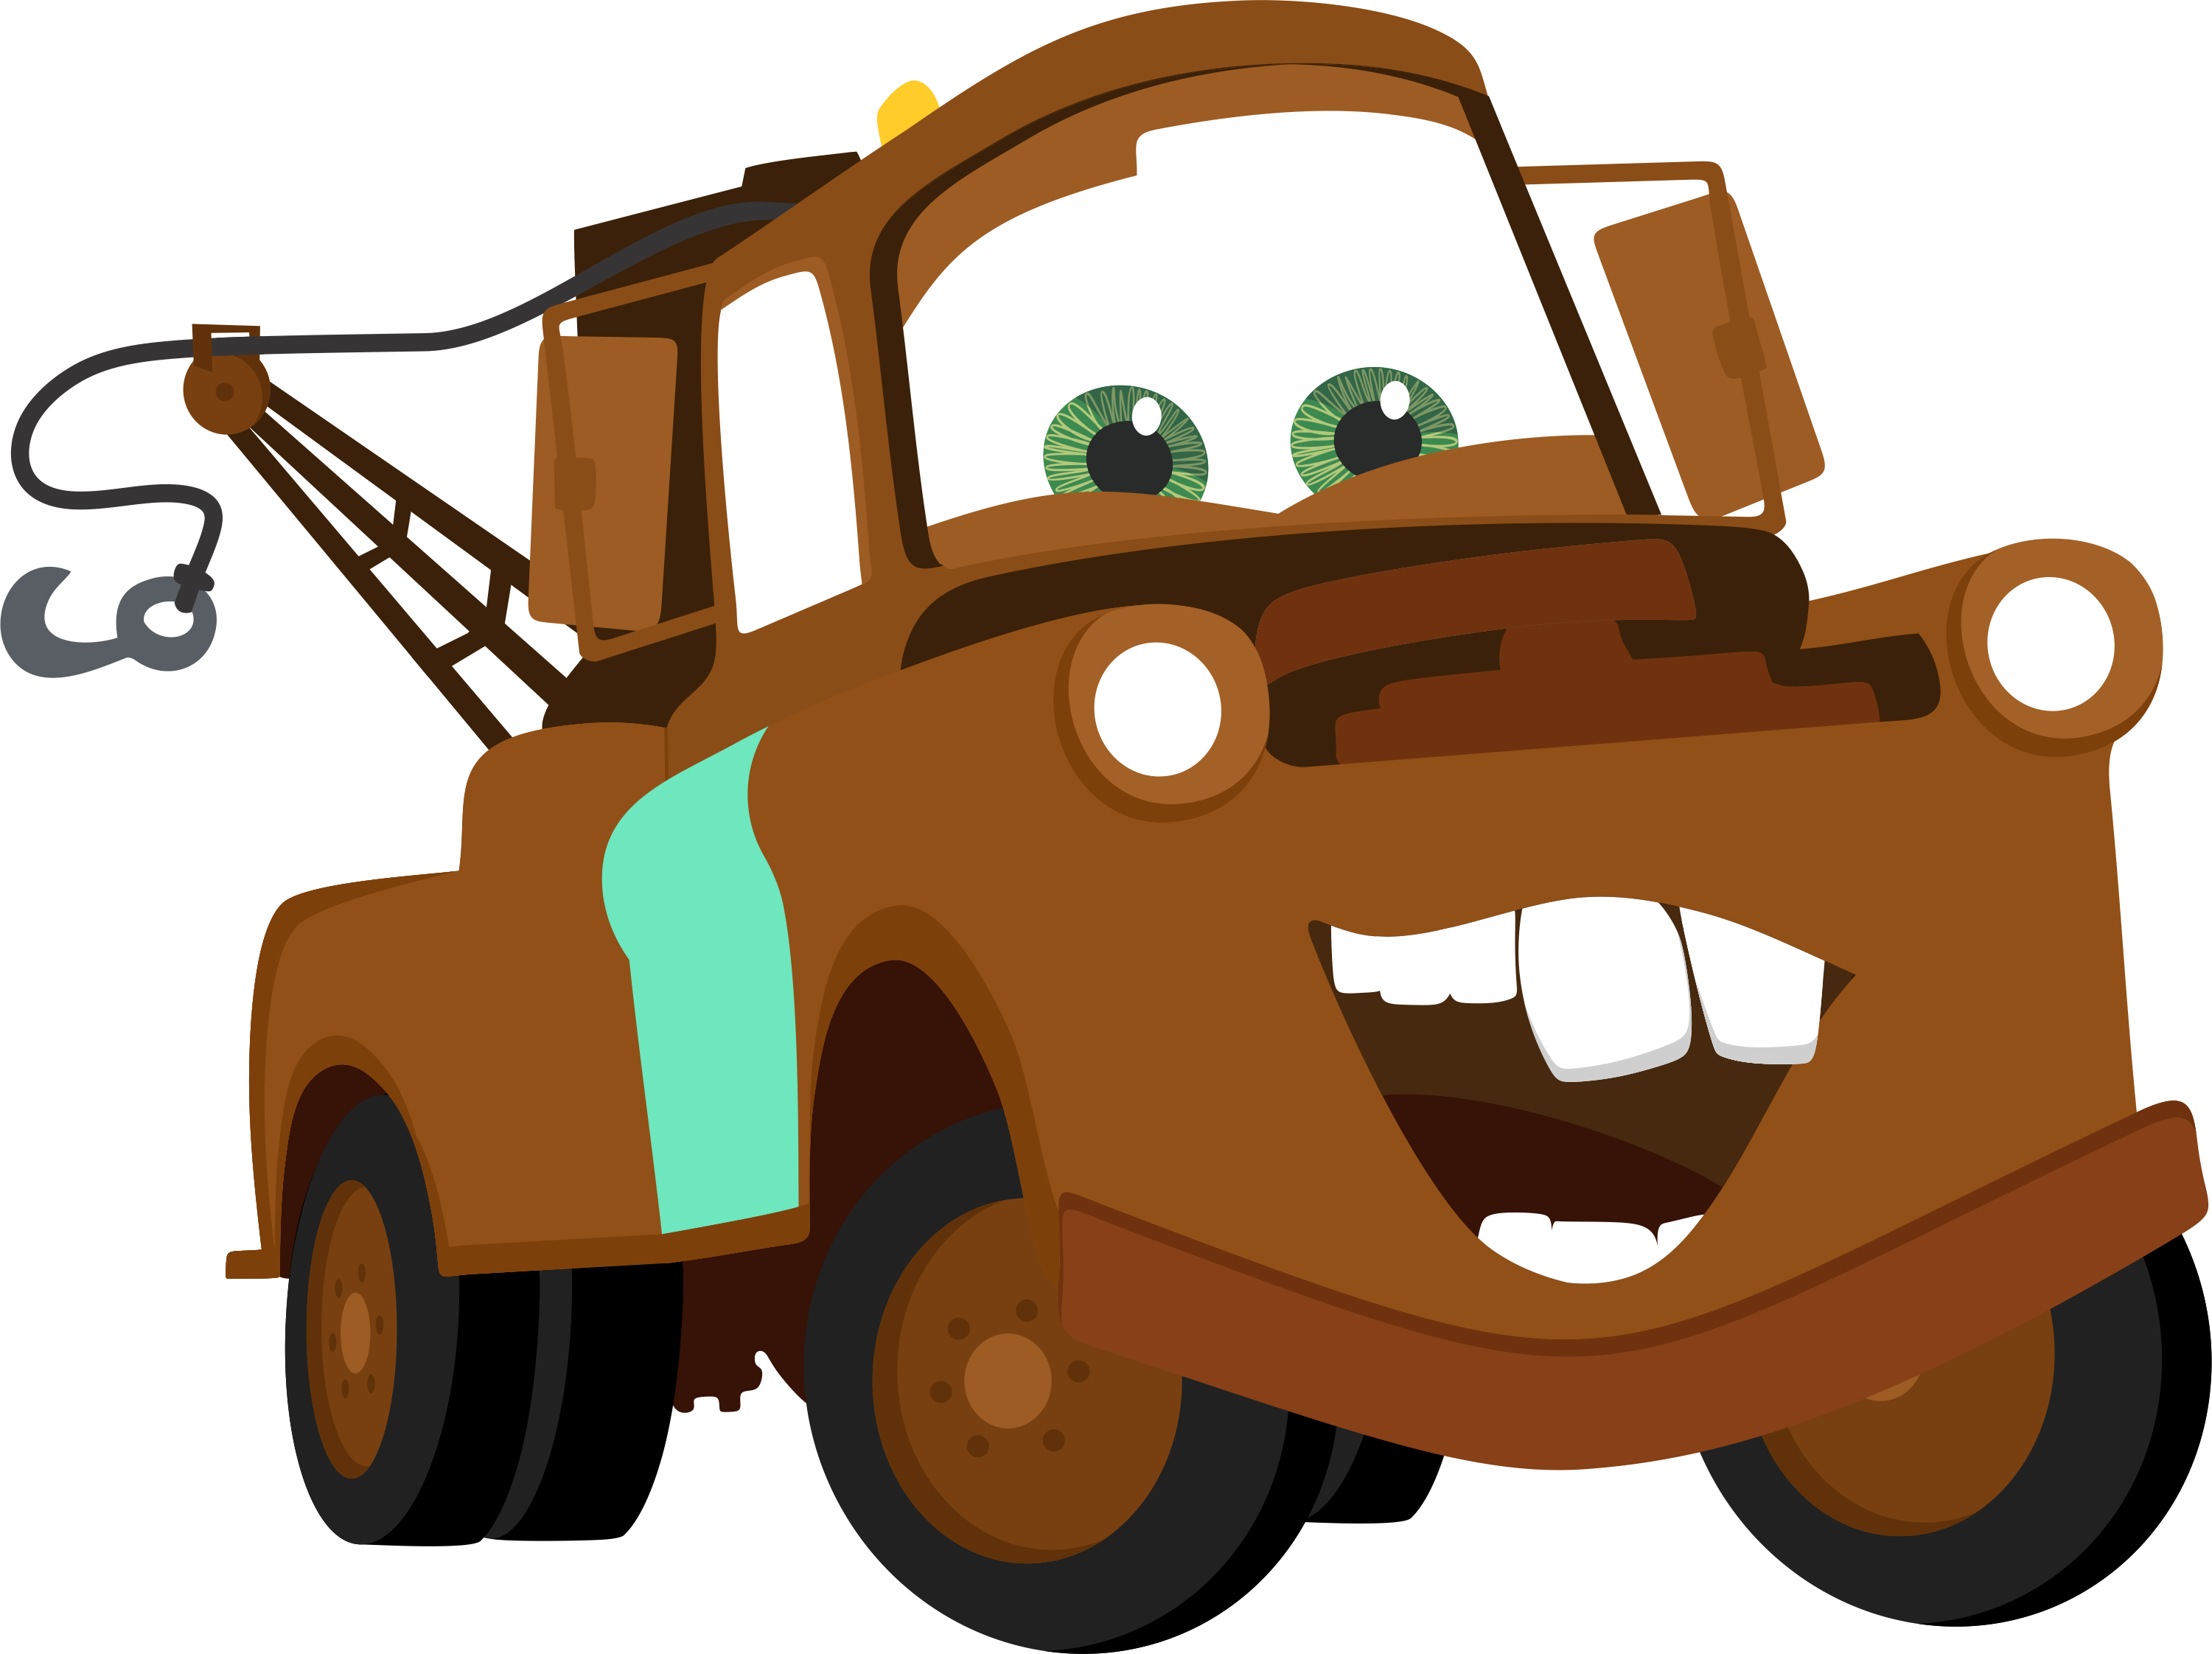 Square clipart car. Disney cars silhouette at